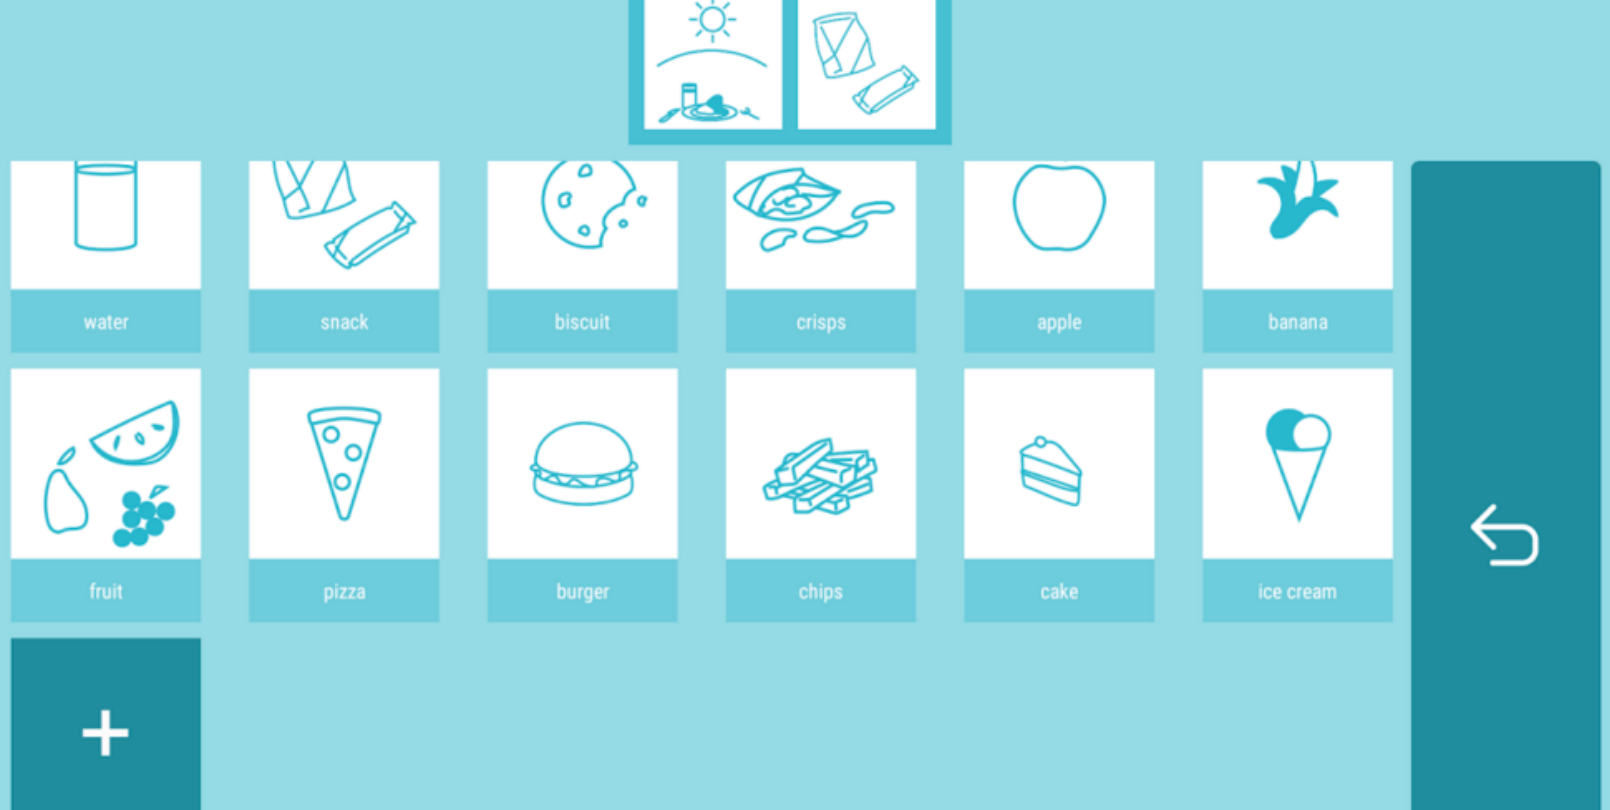 Swiftkey launches symbols to help people with non verbal autism swiftkey launches symbols to help people with non verbal autism communicate biocorpaavc